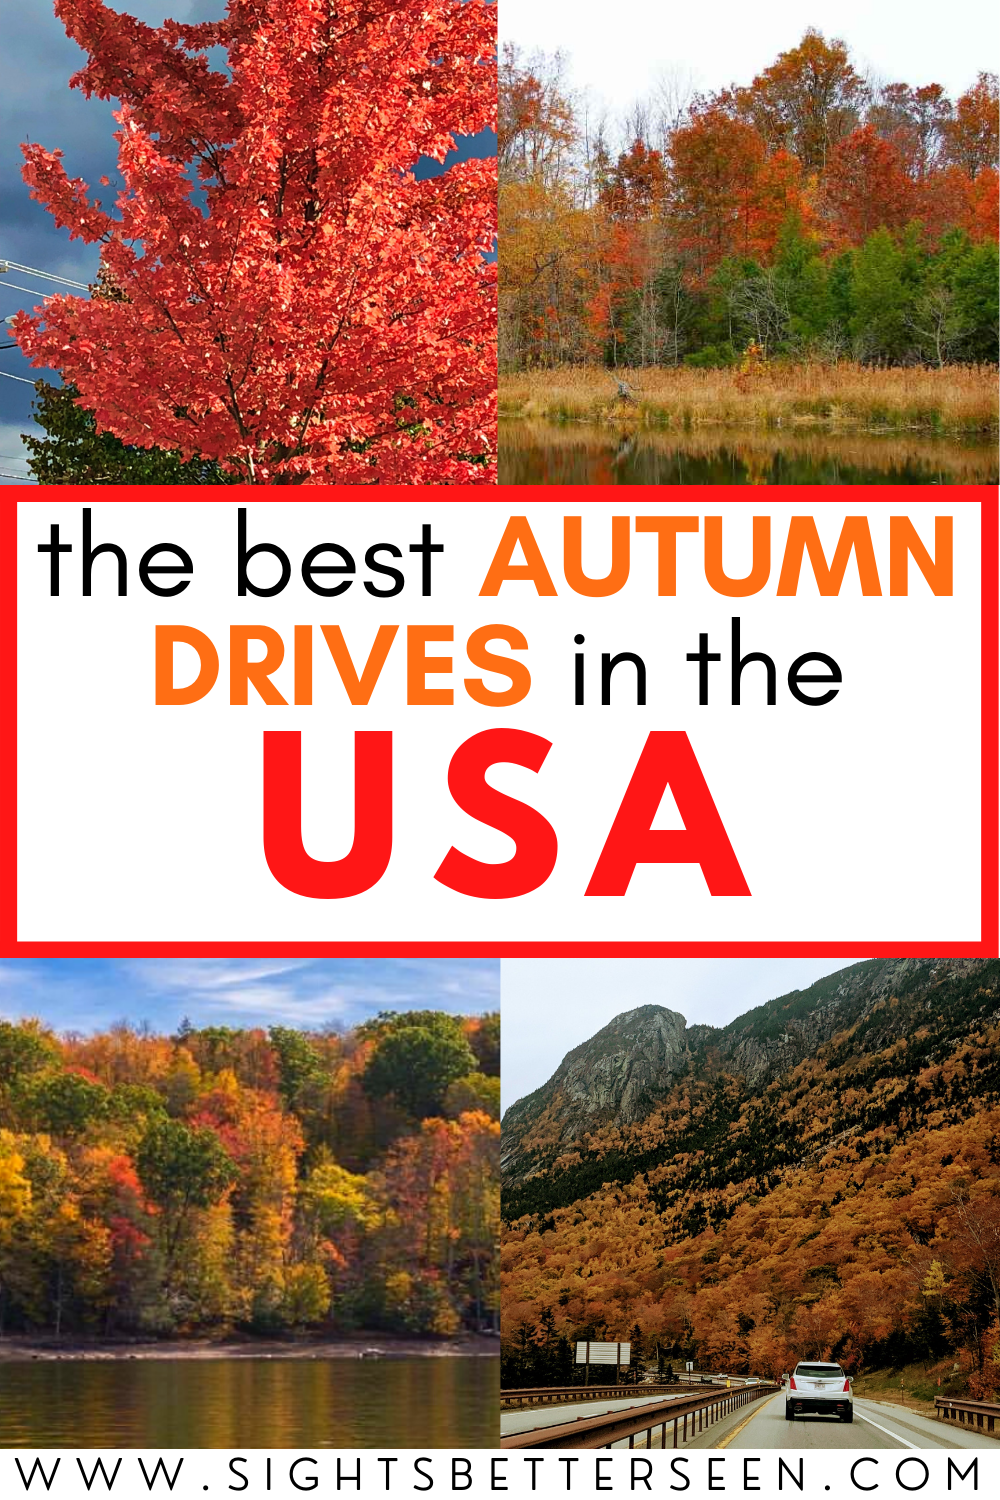 4 photos of fall foliage and red, orange, and yellow trees in the mountains in different states